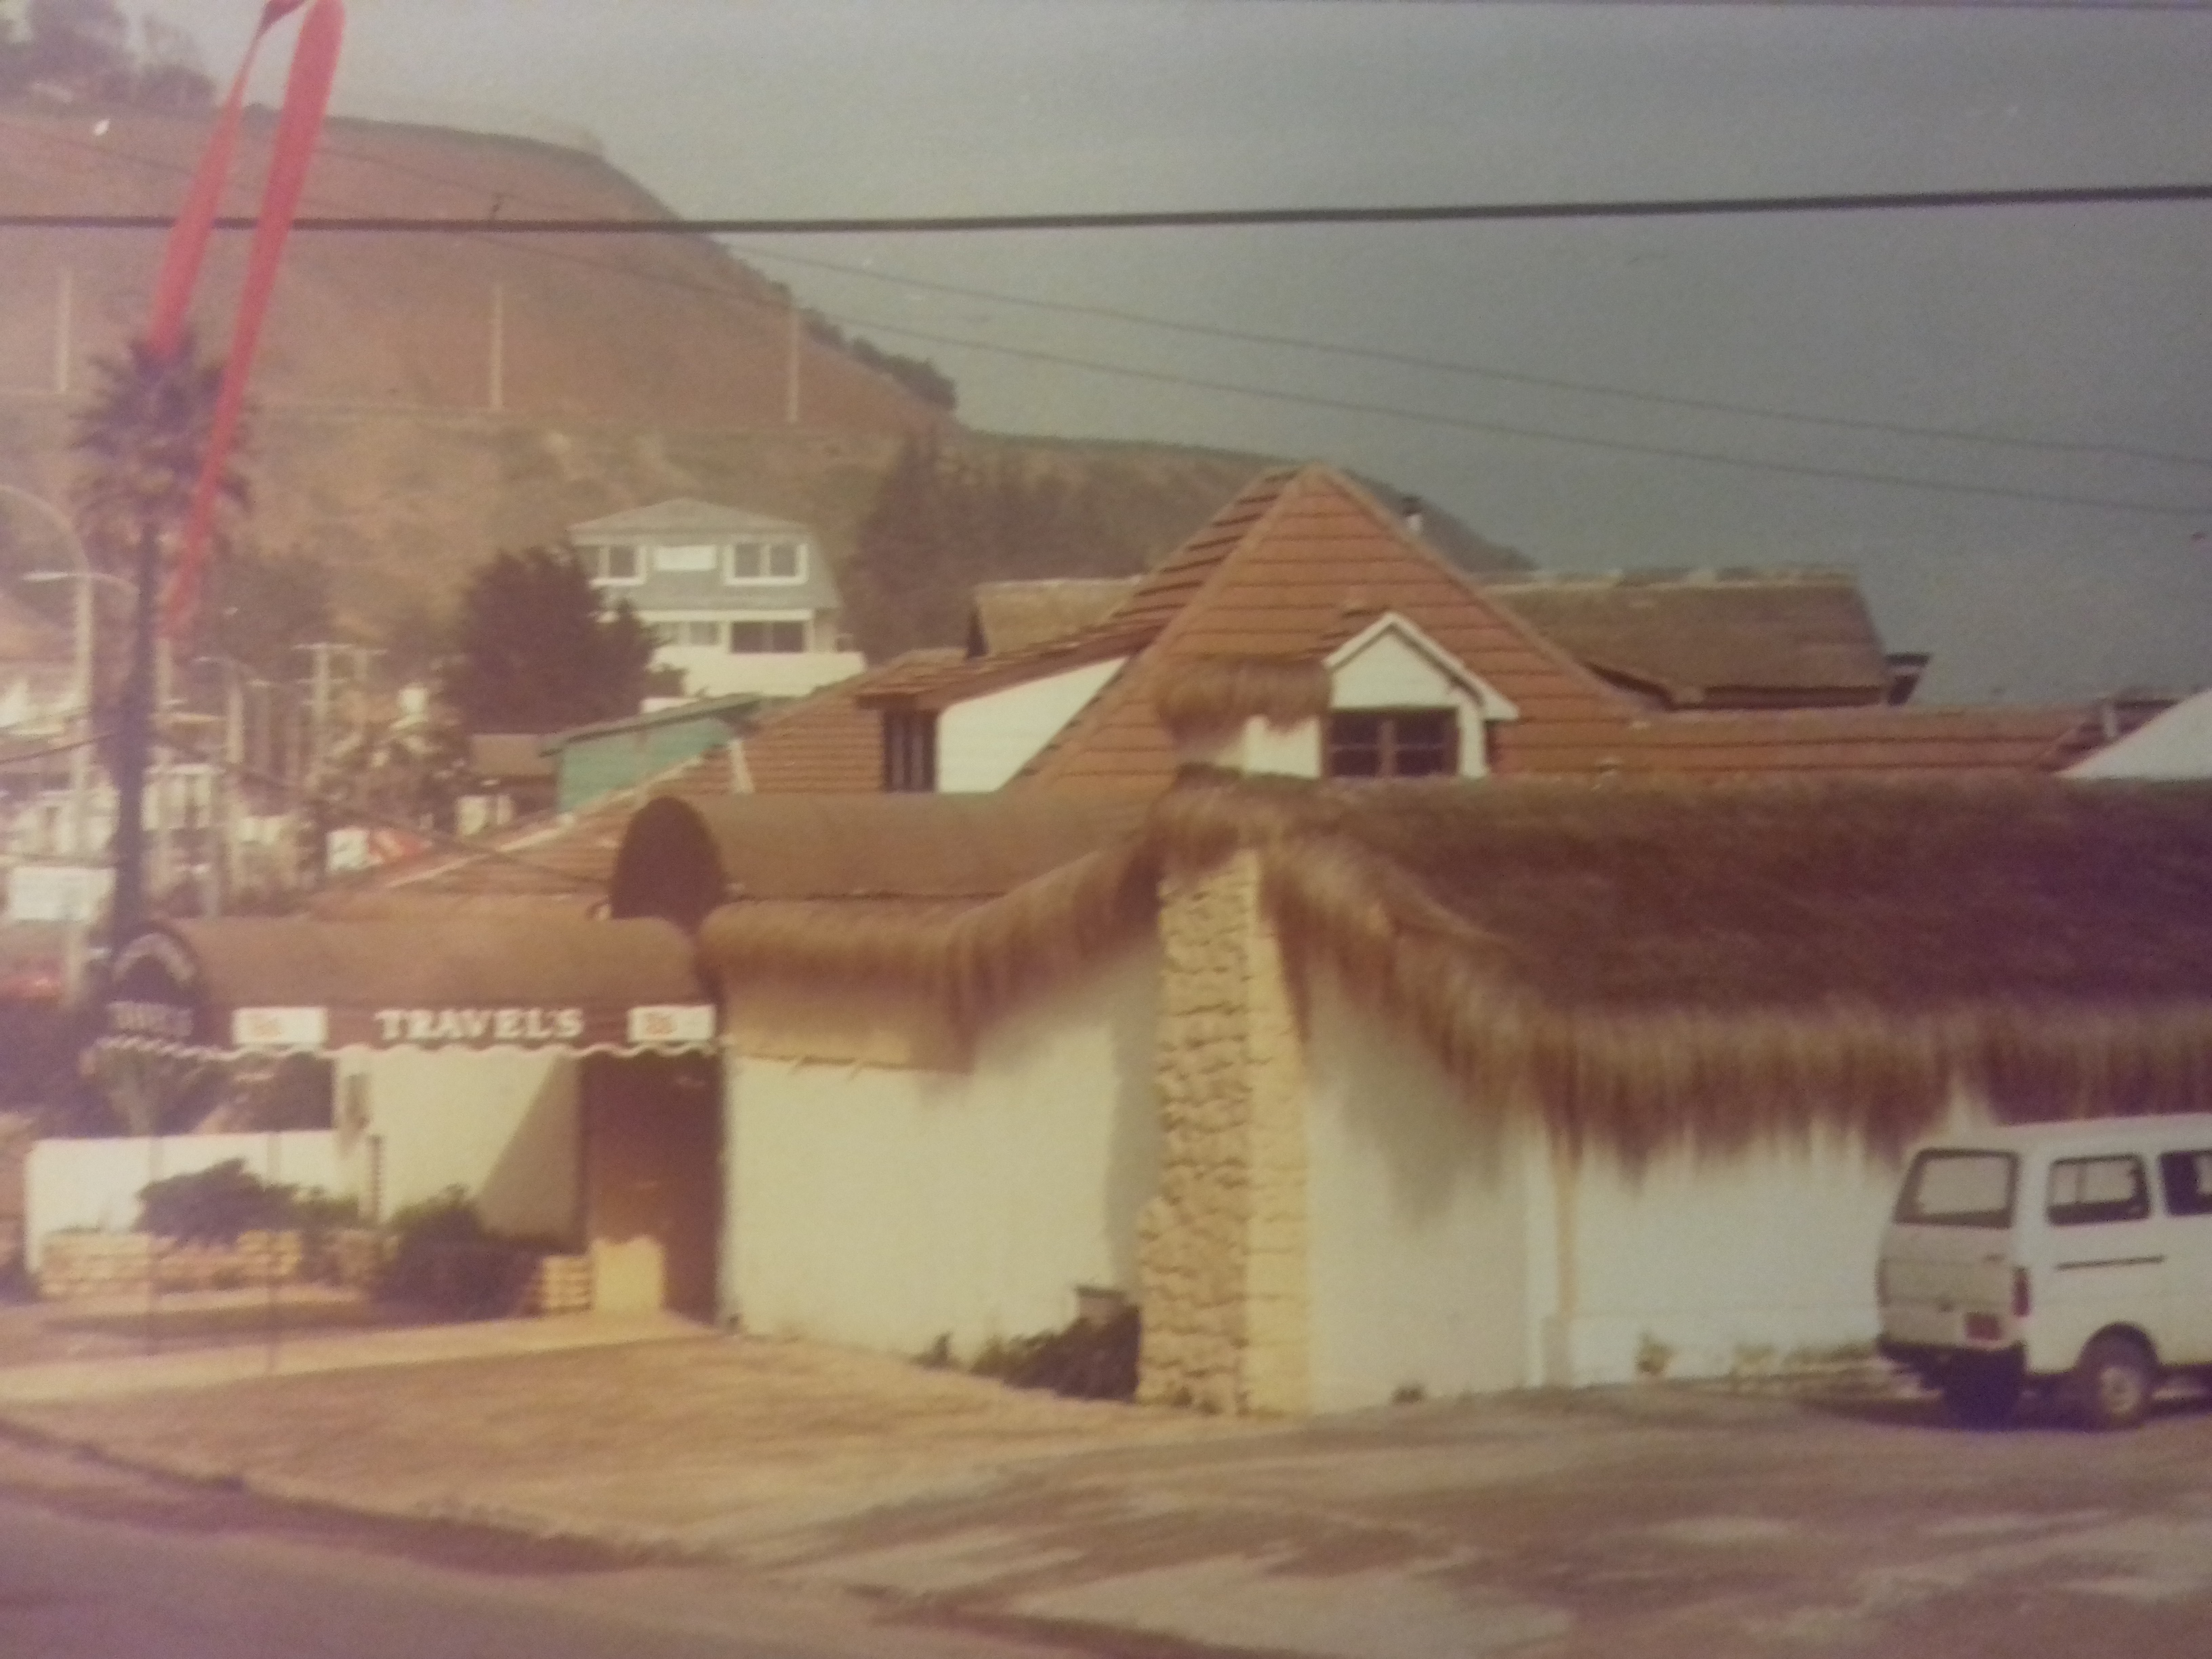 Enterreno - Fotos históricas de chile - fotos antiguas de Chile - Dicoteca Travels, 1982